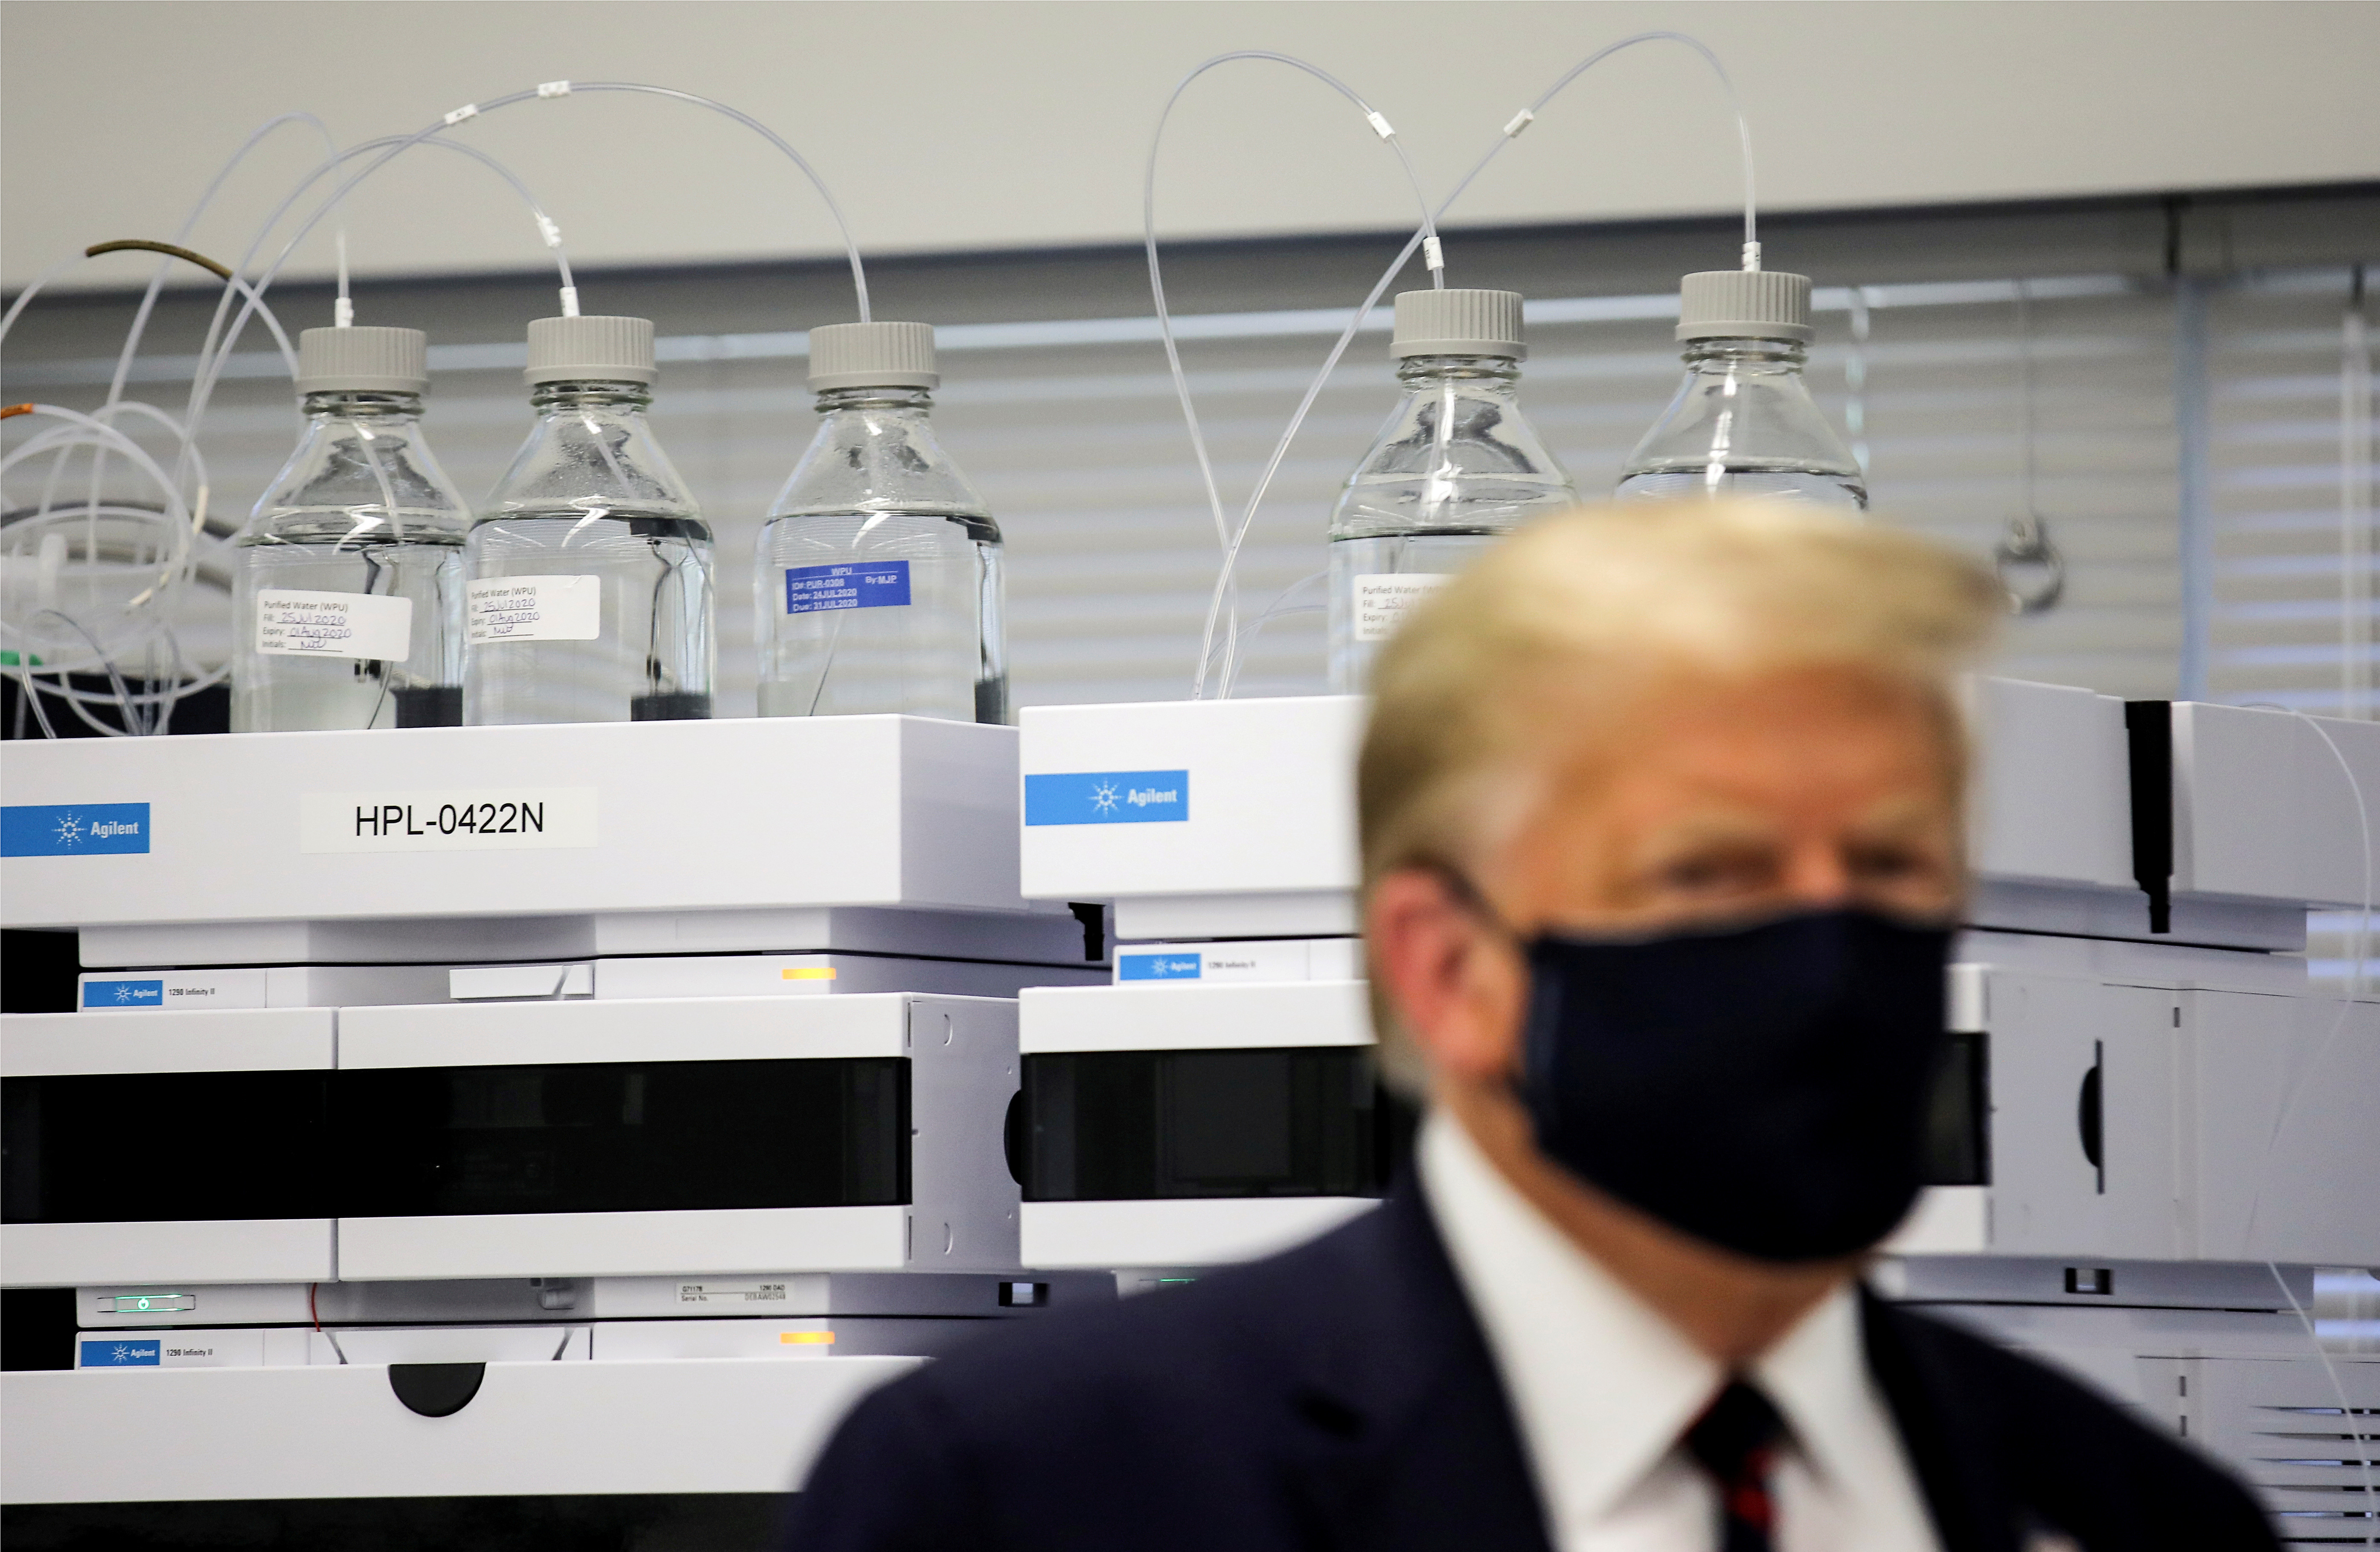 U.S. President Donald Trump wears a protective face mask during a tour of the Fujifilm Diosynth Biotechnologies' Innovation Center, a pharmaceutical manufacturing plant where components for a potential coronavirus disease (COVID-19) vaccine candidate Novavax are being developed, in Morrrisville, North Carolina, U.S., July 27, 2020. REUTERS/Carlos Barria     TPX IMAGES OF THE DAY - RC2W1I9ANJ1H